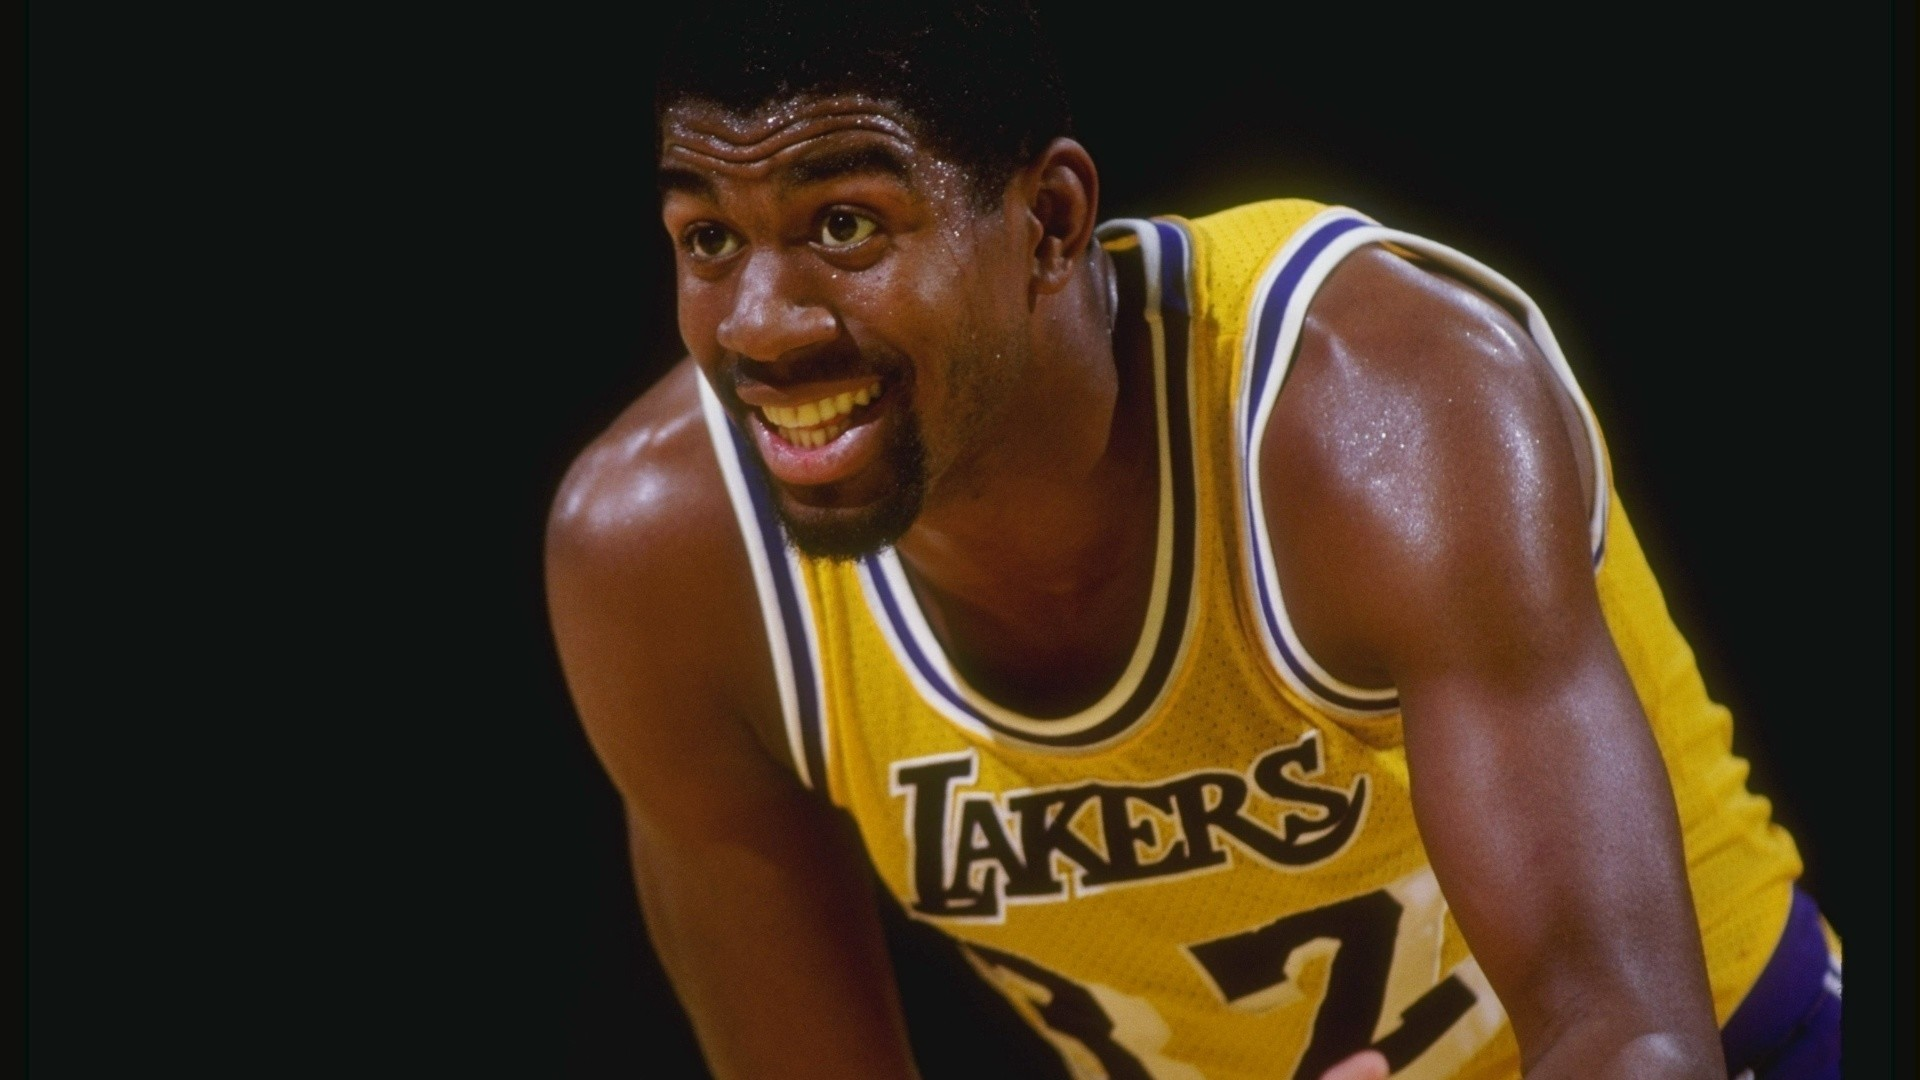 1920x1080 Magic Johnson